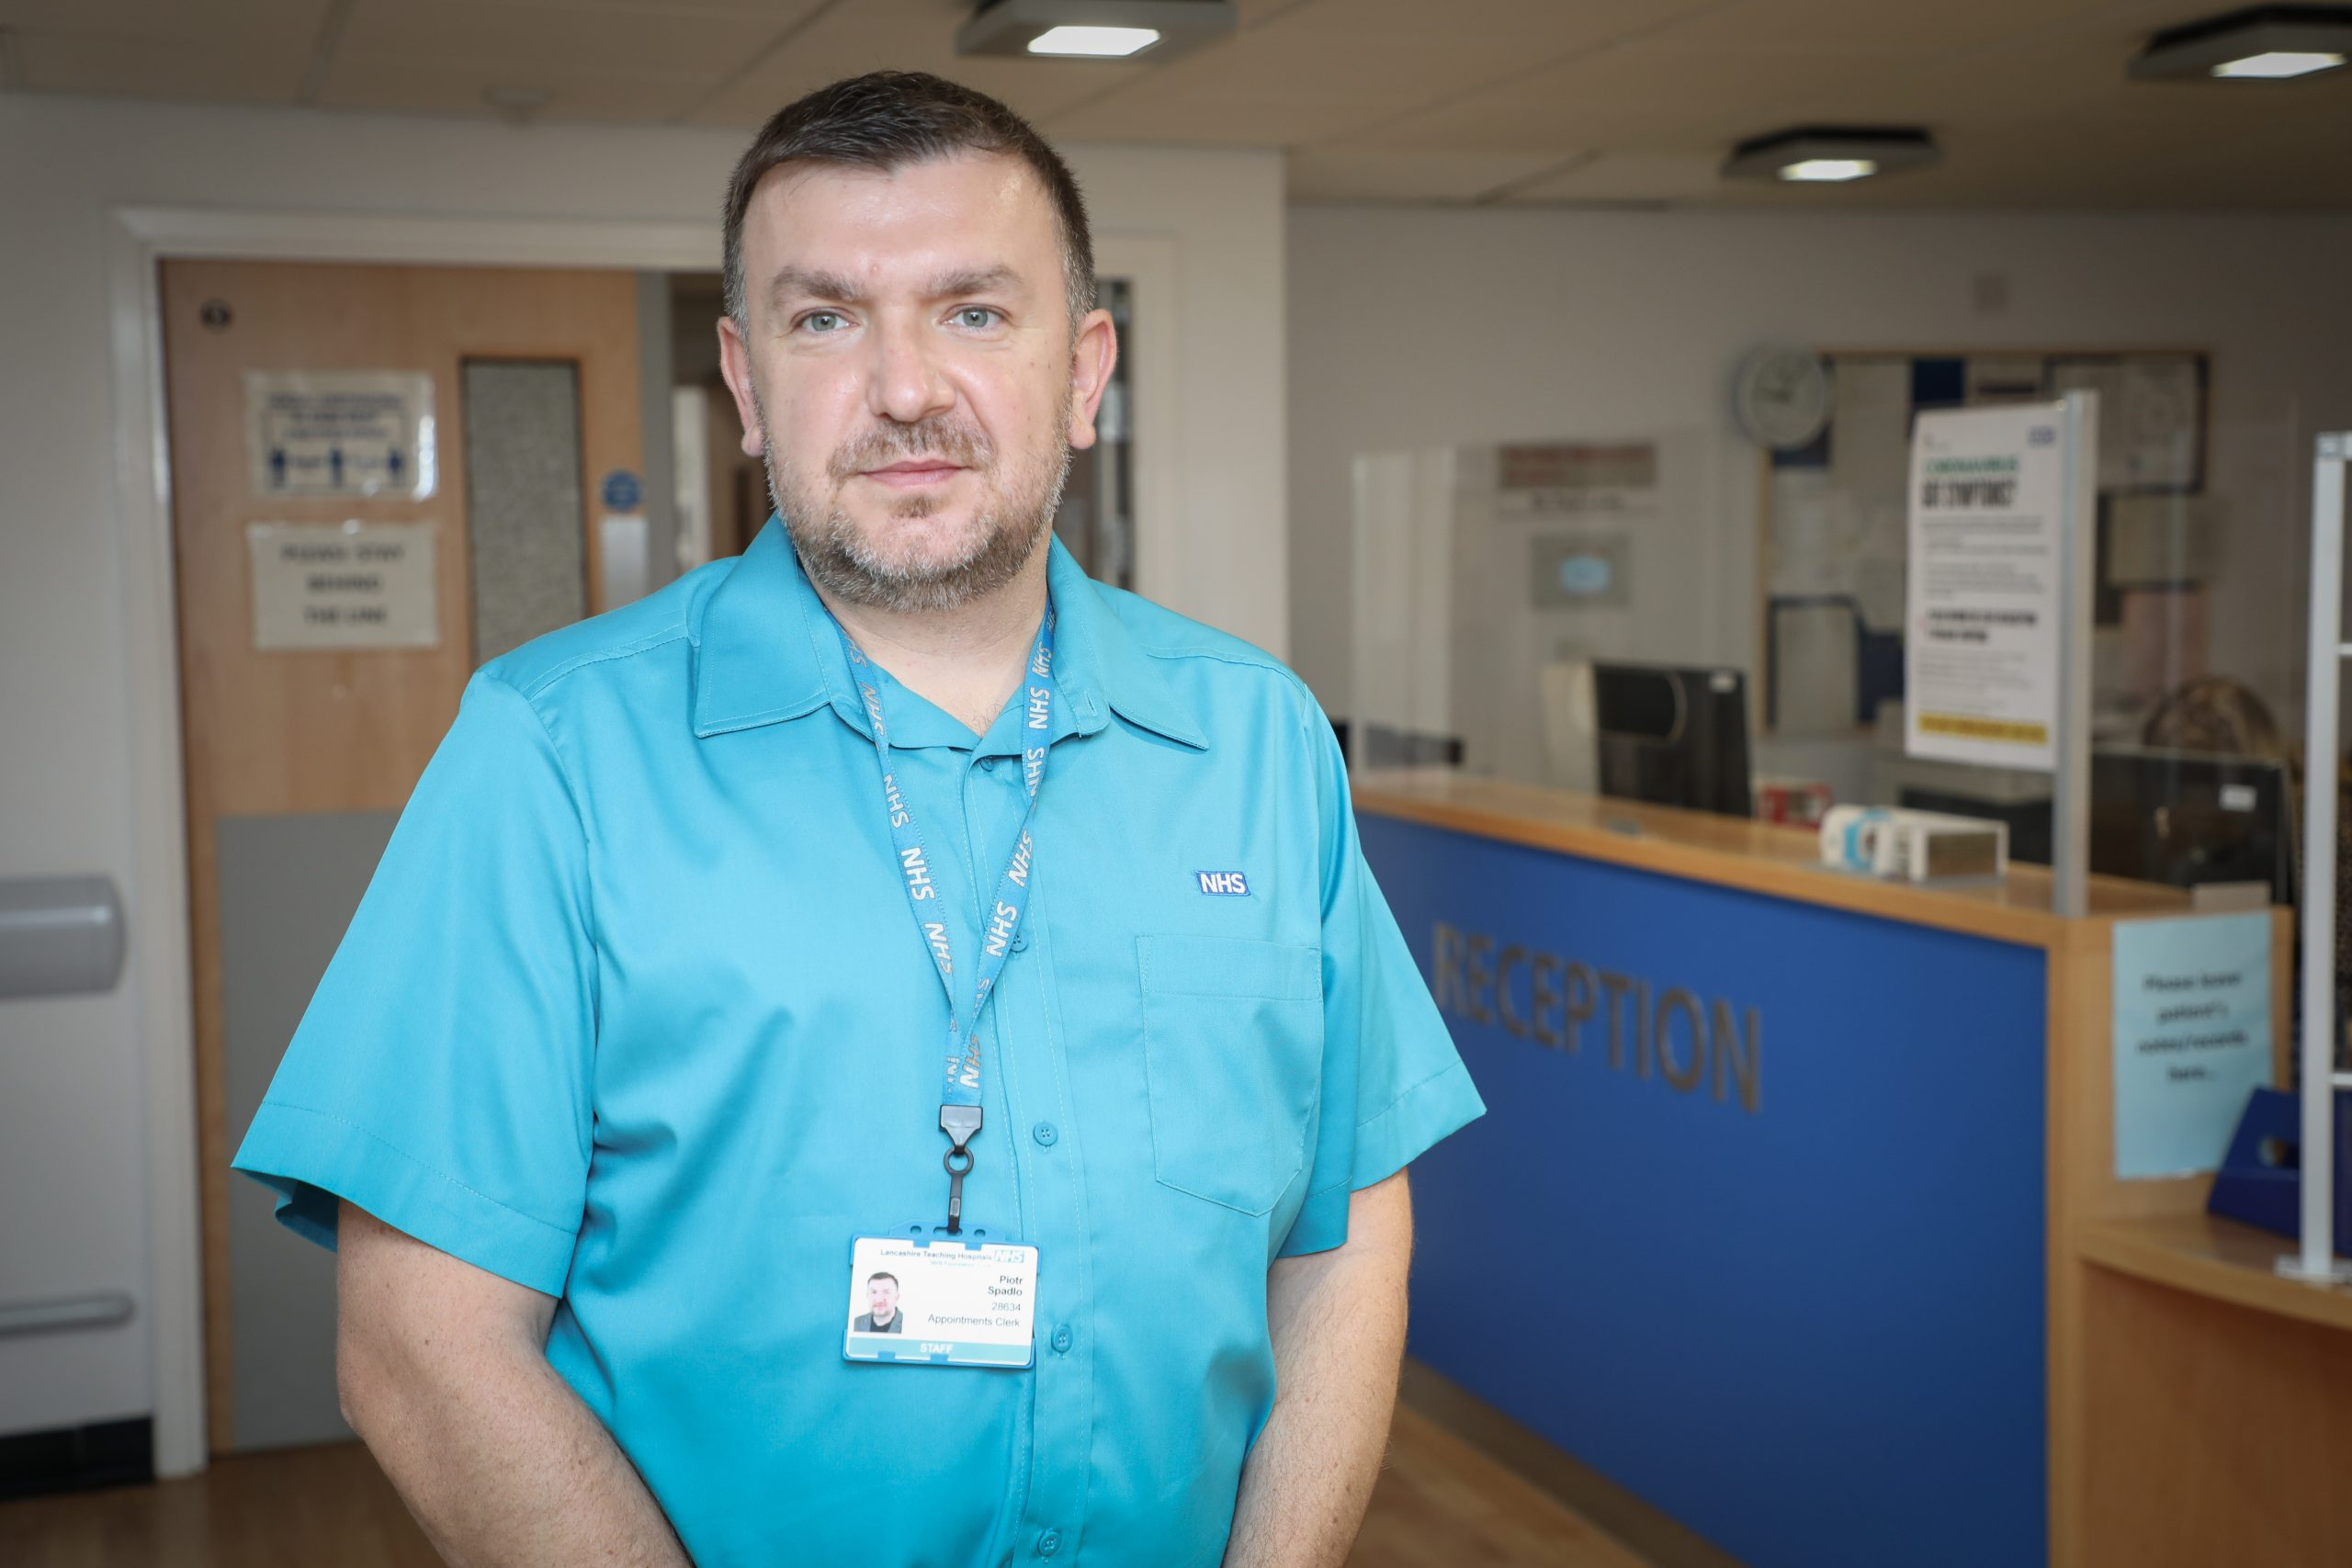 Picture of Piotr Spadlo, a Staff Governor at Lancashire Teaching Hospitals NHS Foundation Trust